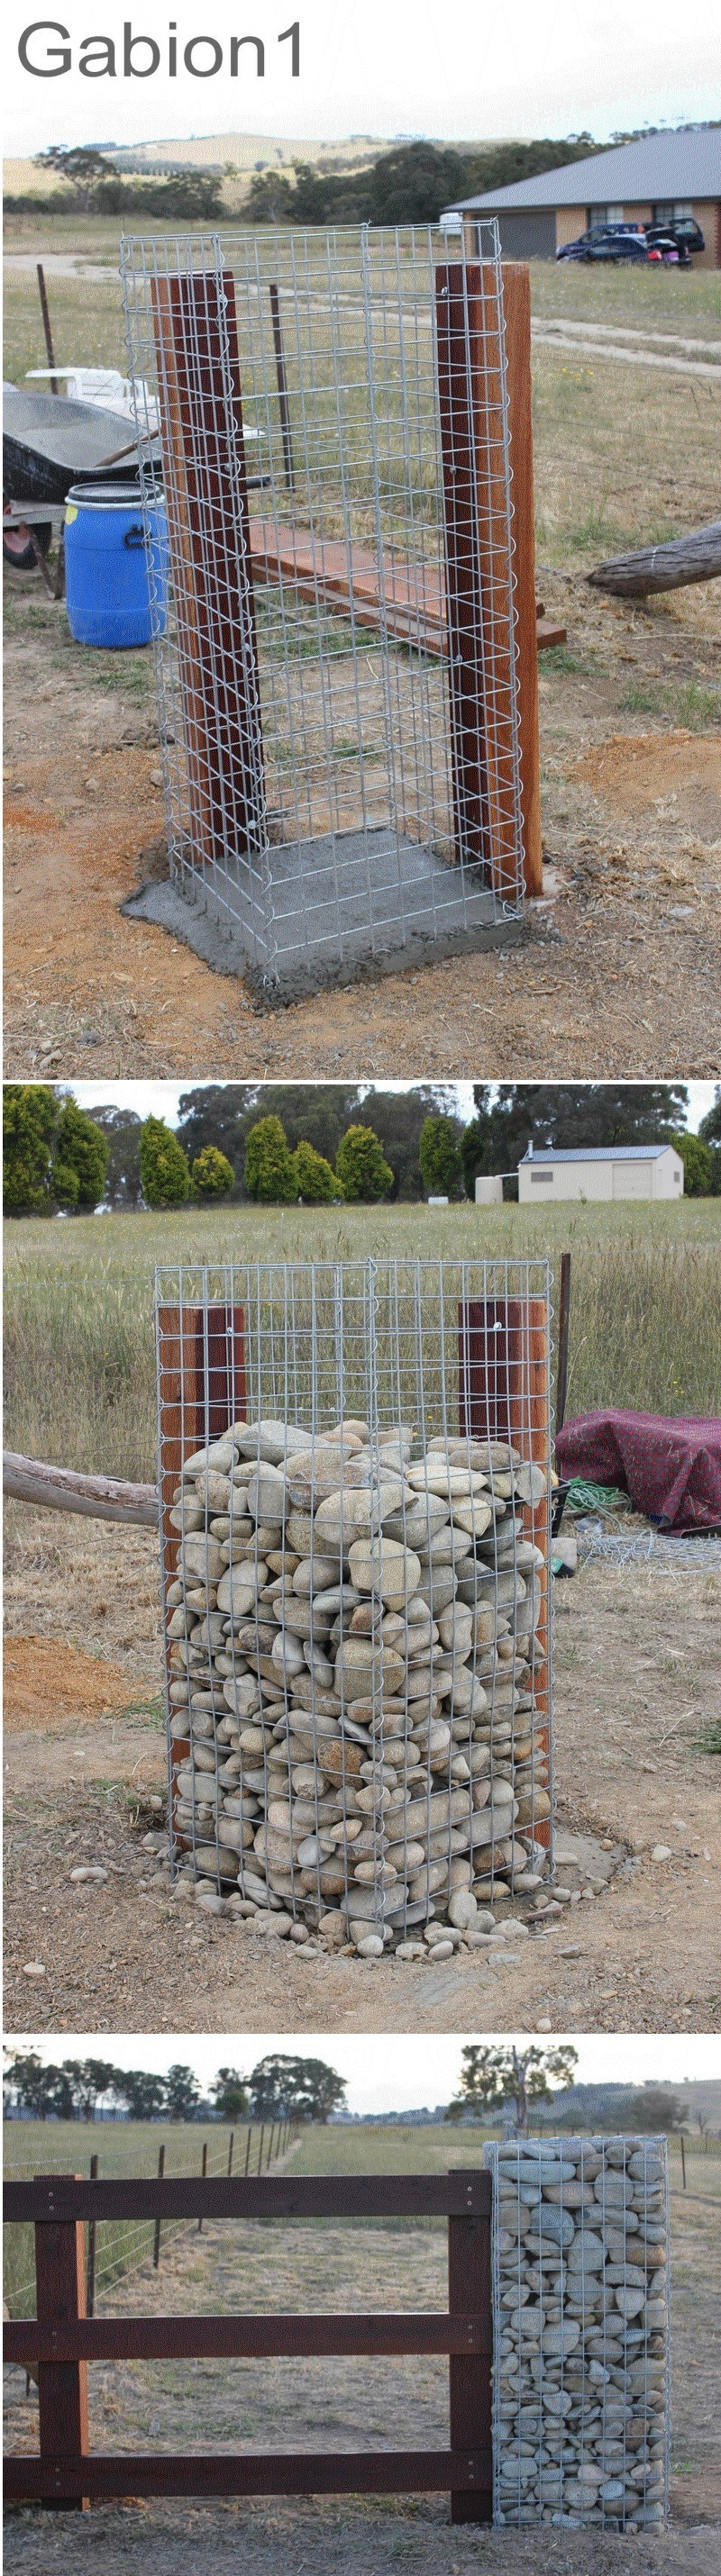 gabion gate column detail